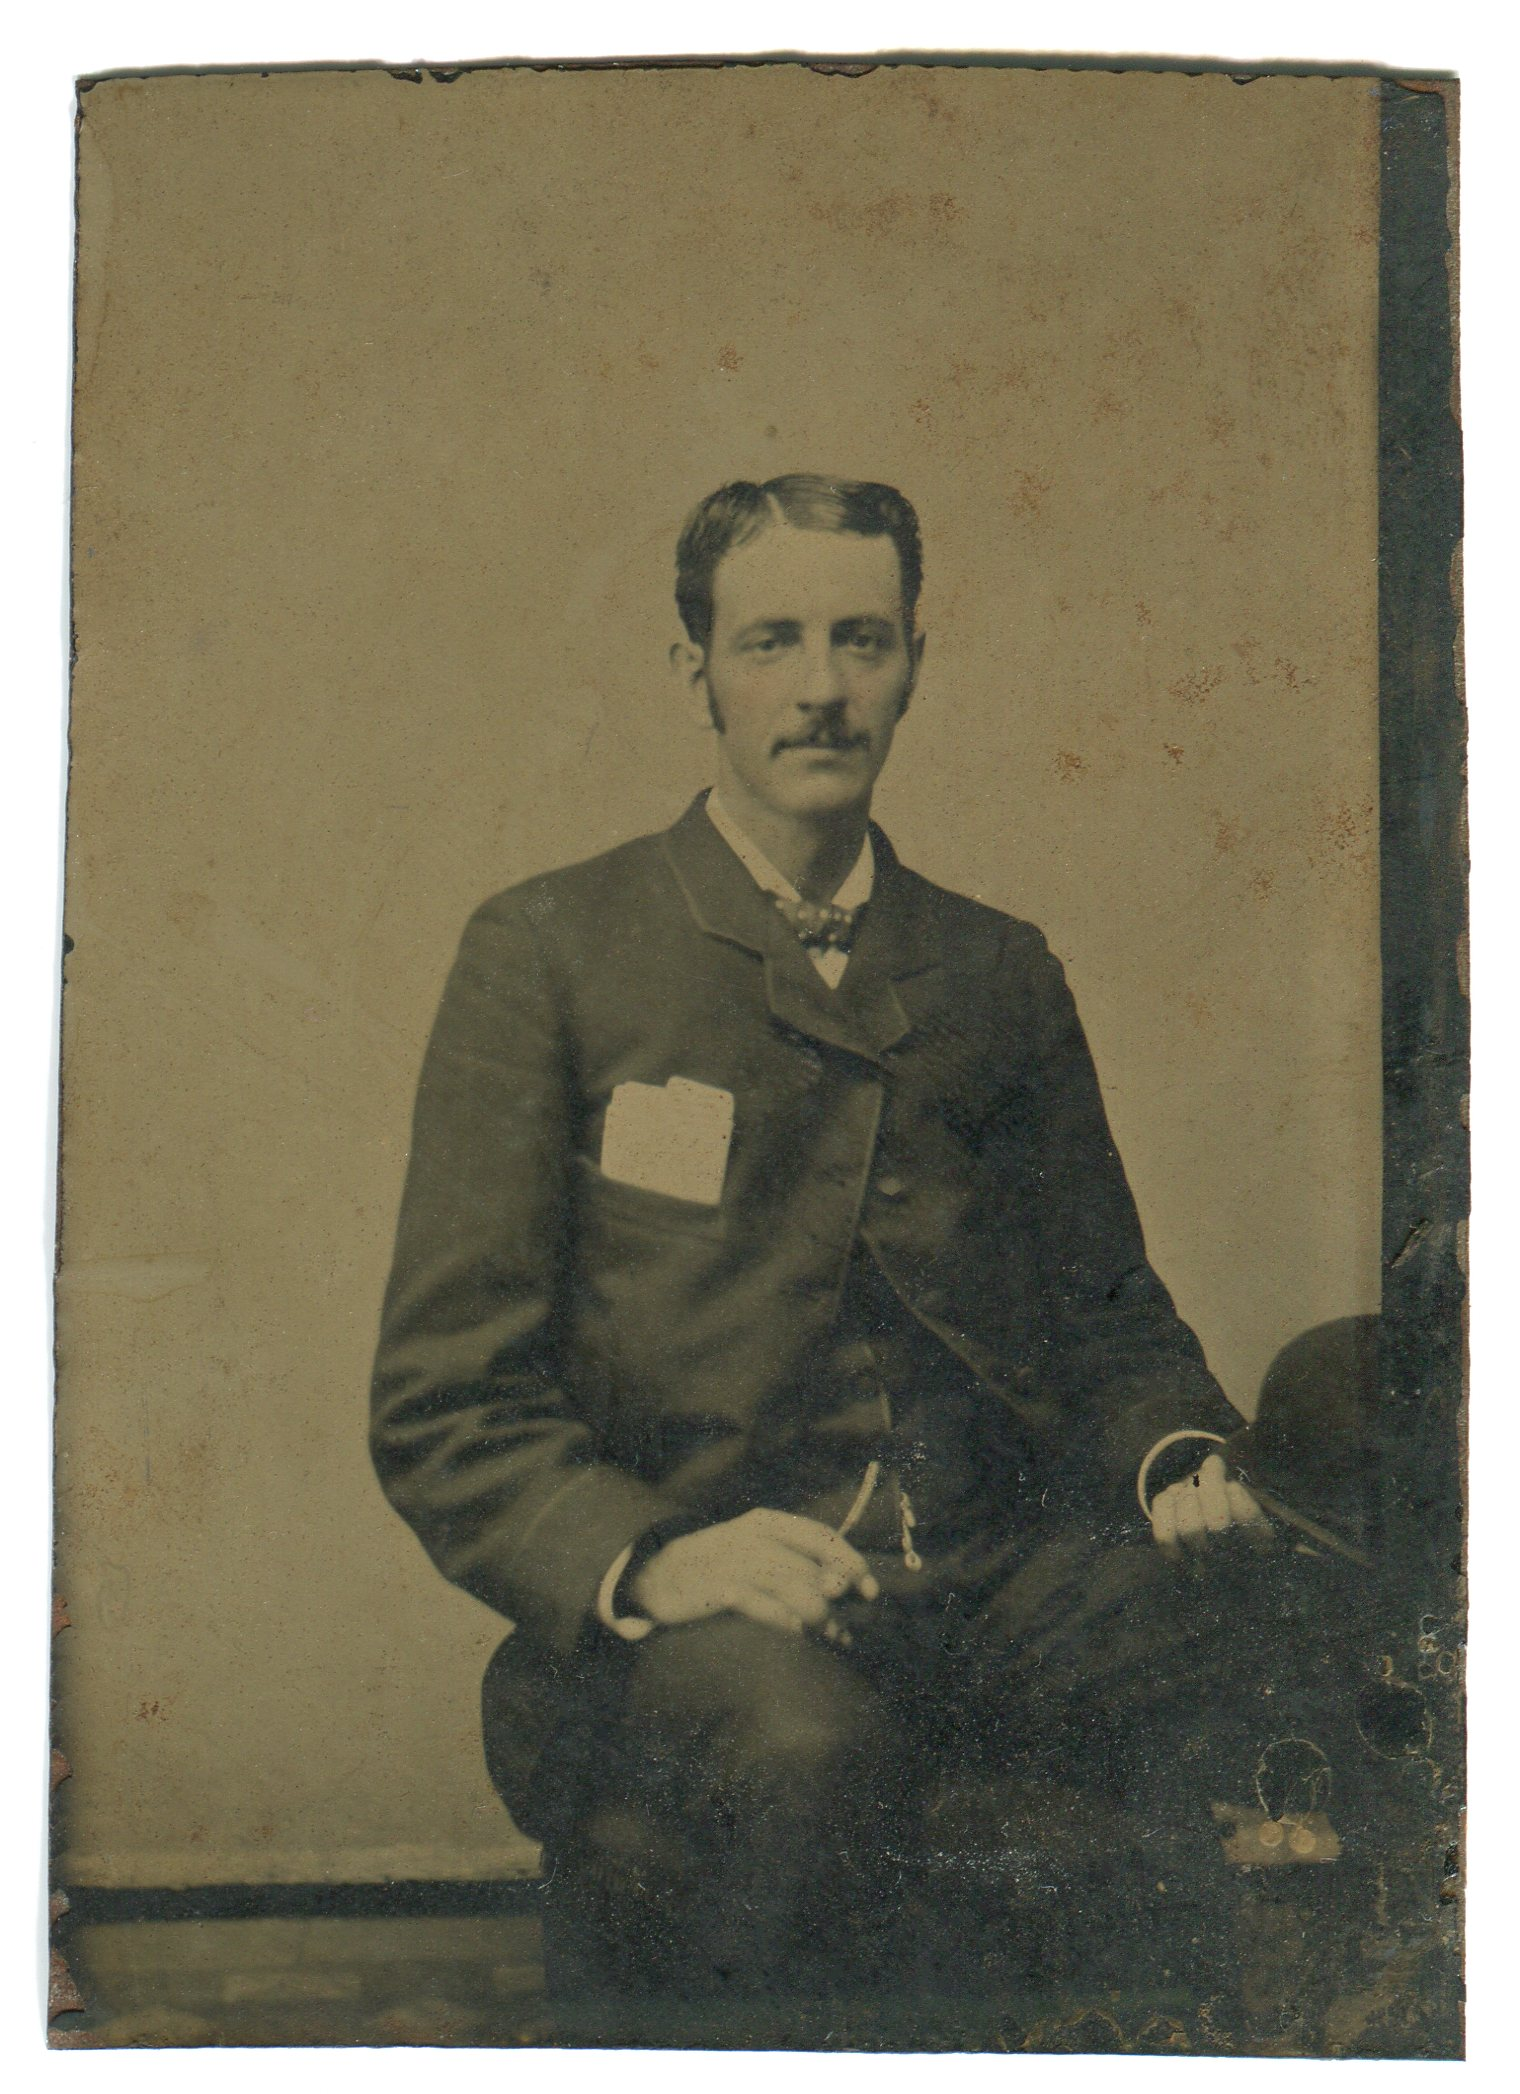 A tintype of William C. Brady from around 1875. Tintypes were cheaper to produce and became the common format in the 1860s.